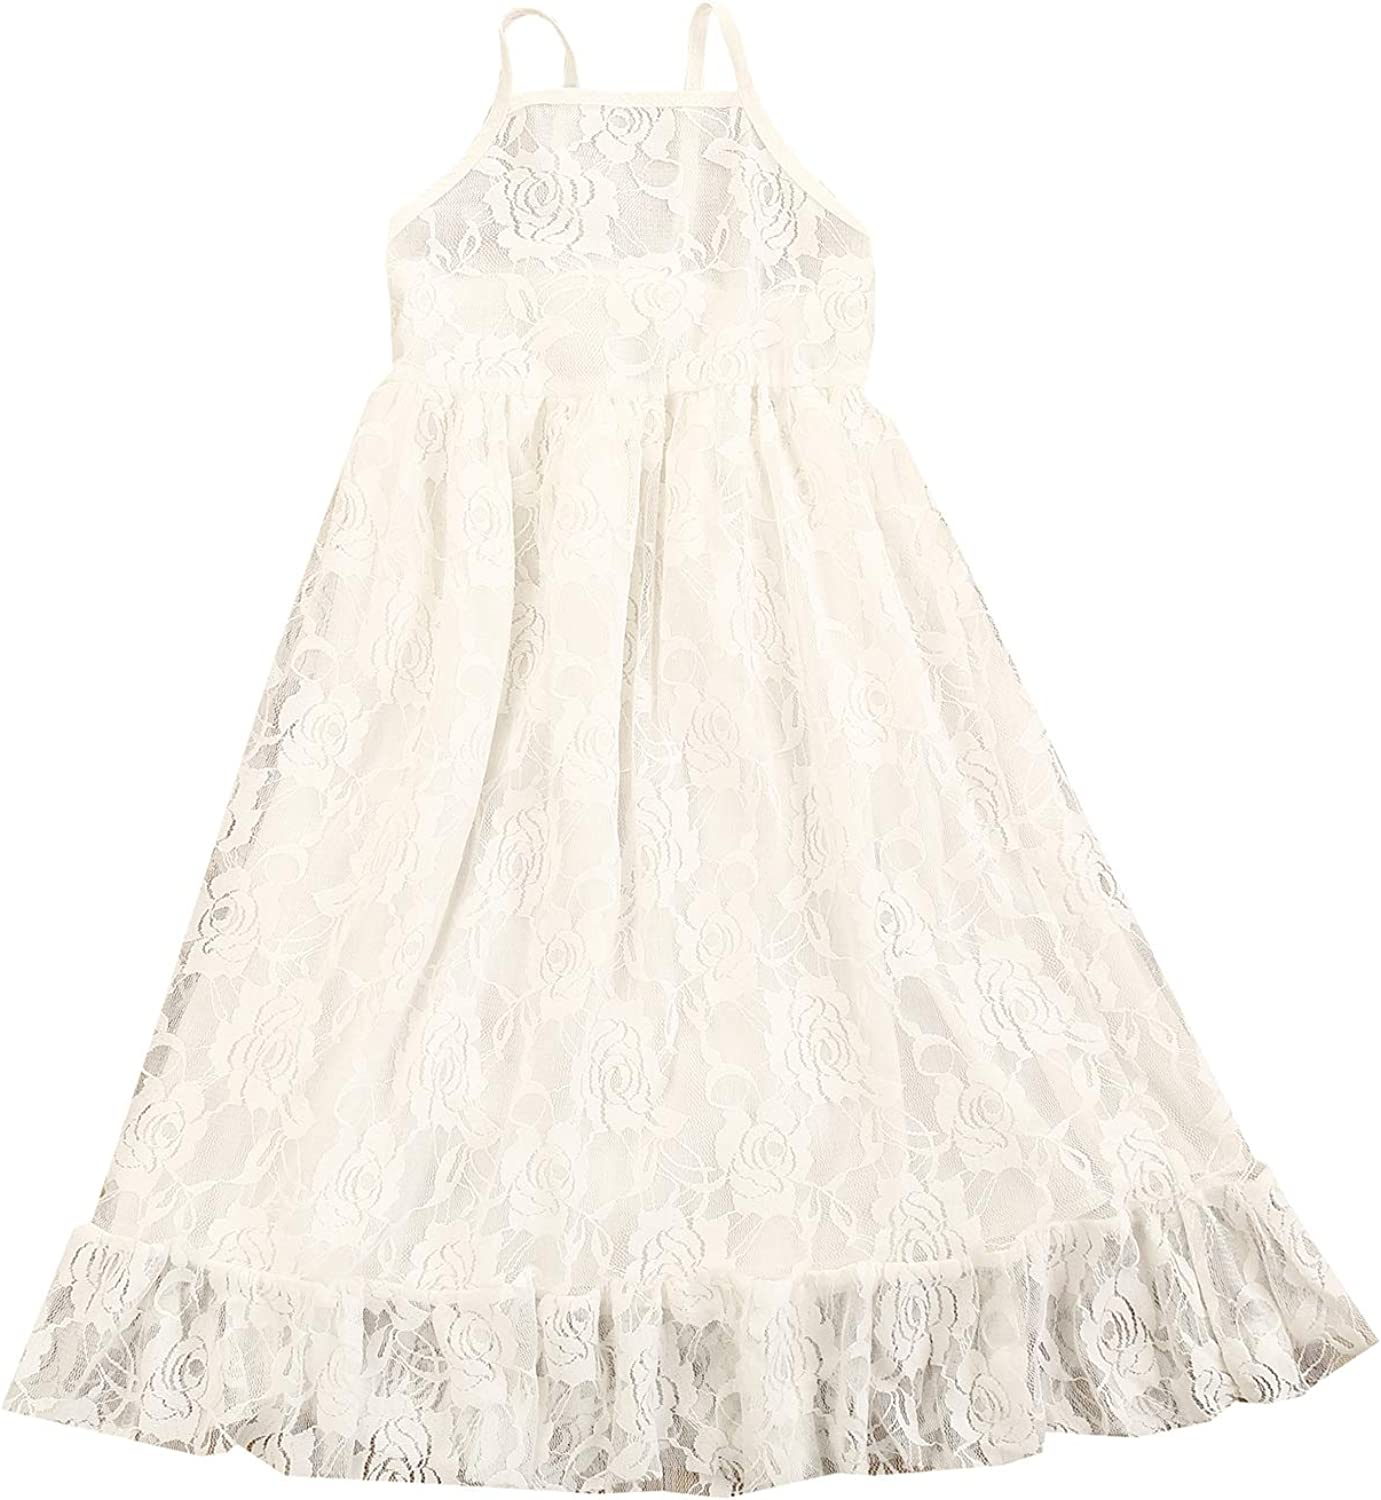 Girls' Special Occasion Dresses Girls Flower Vintage Floral Lace Dress Wedding Party Evening Formal Pegeant Dance Gown